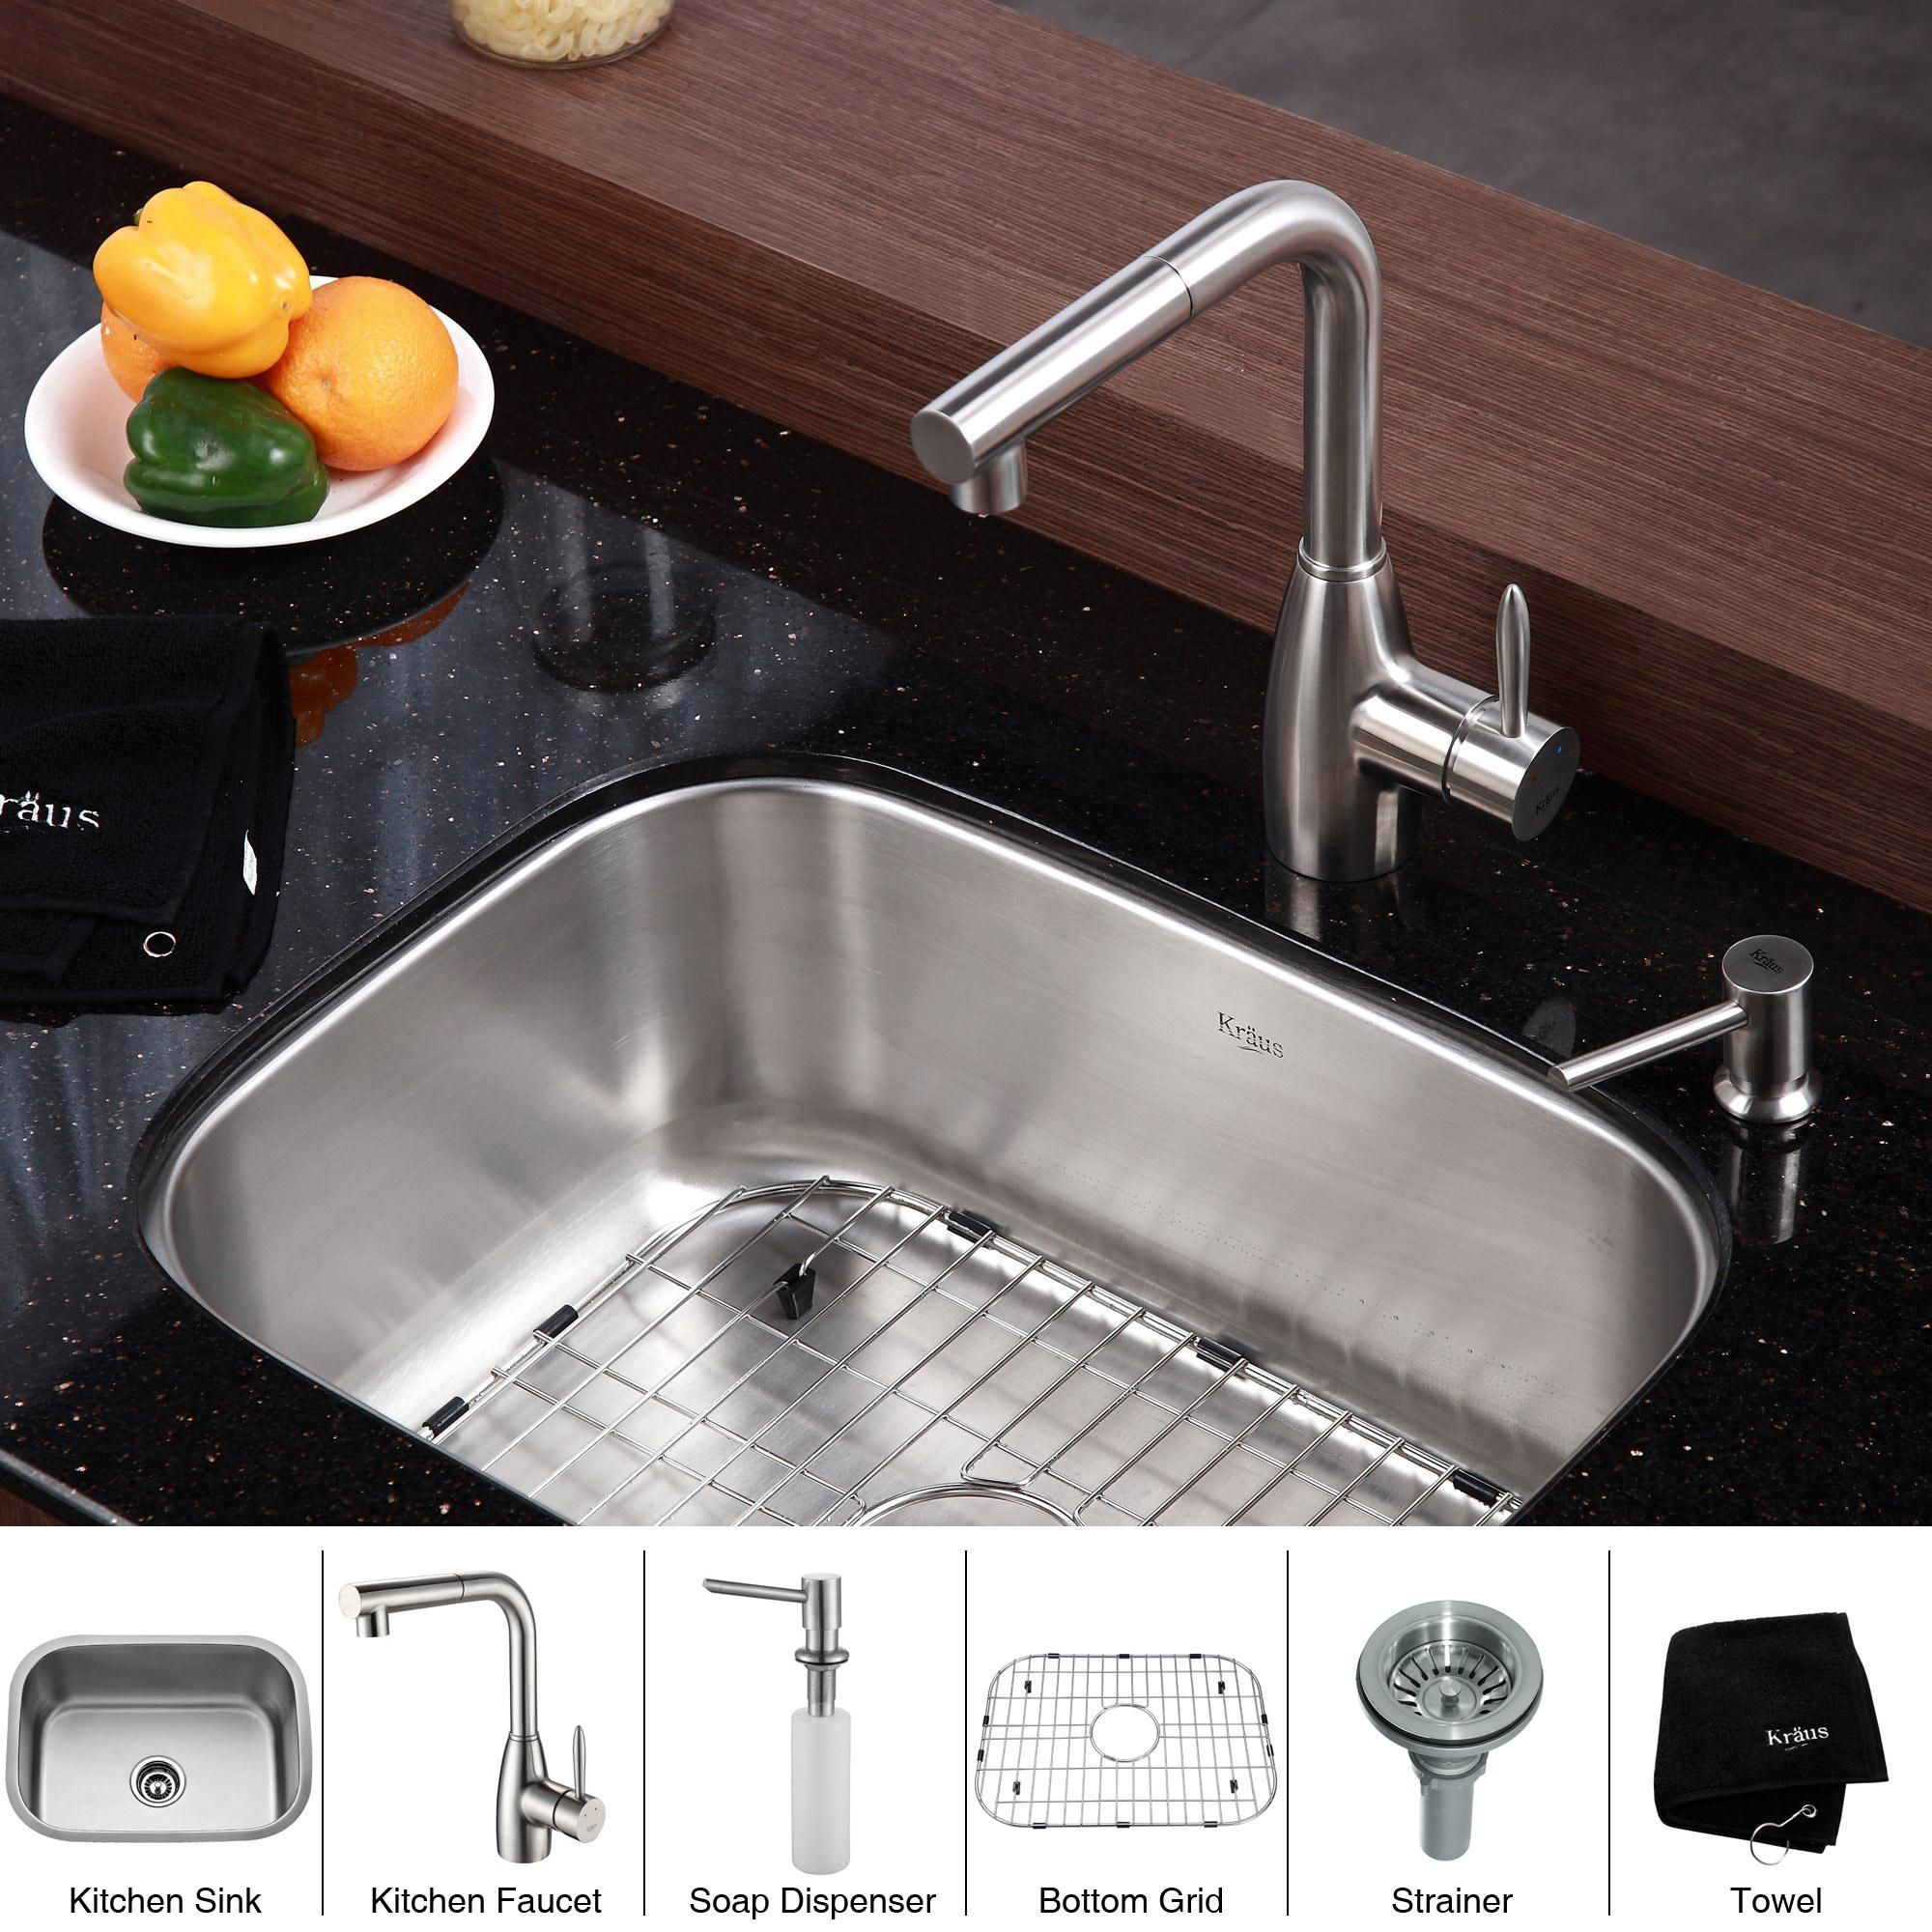 With an industrial look and contemporary design, this stainless-steel undermount kitchen sink from Kraus will add a luxurious look to your kitchen. The single-handle design is easy for kids to operate, and you will love the scratch-resistant finish.